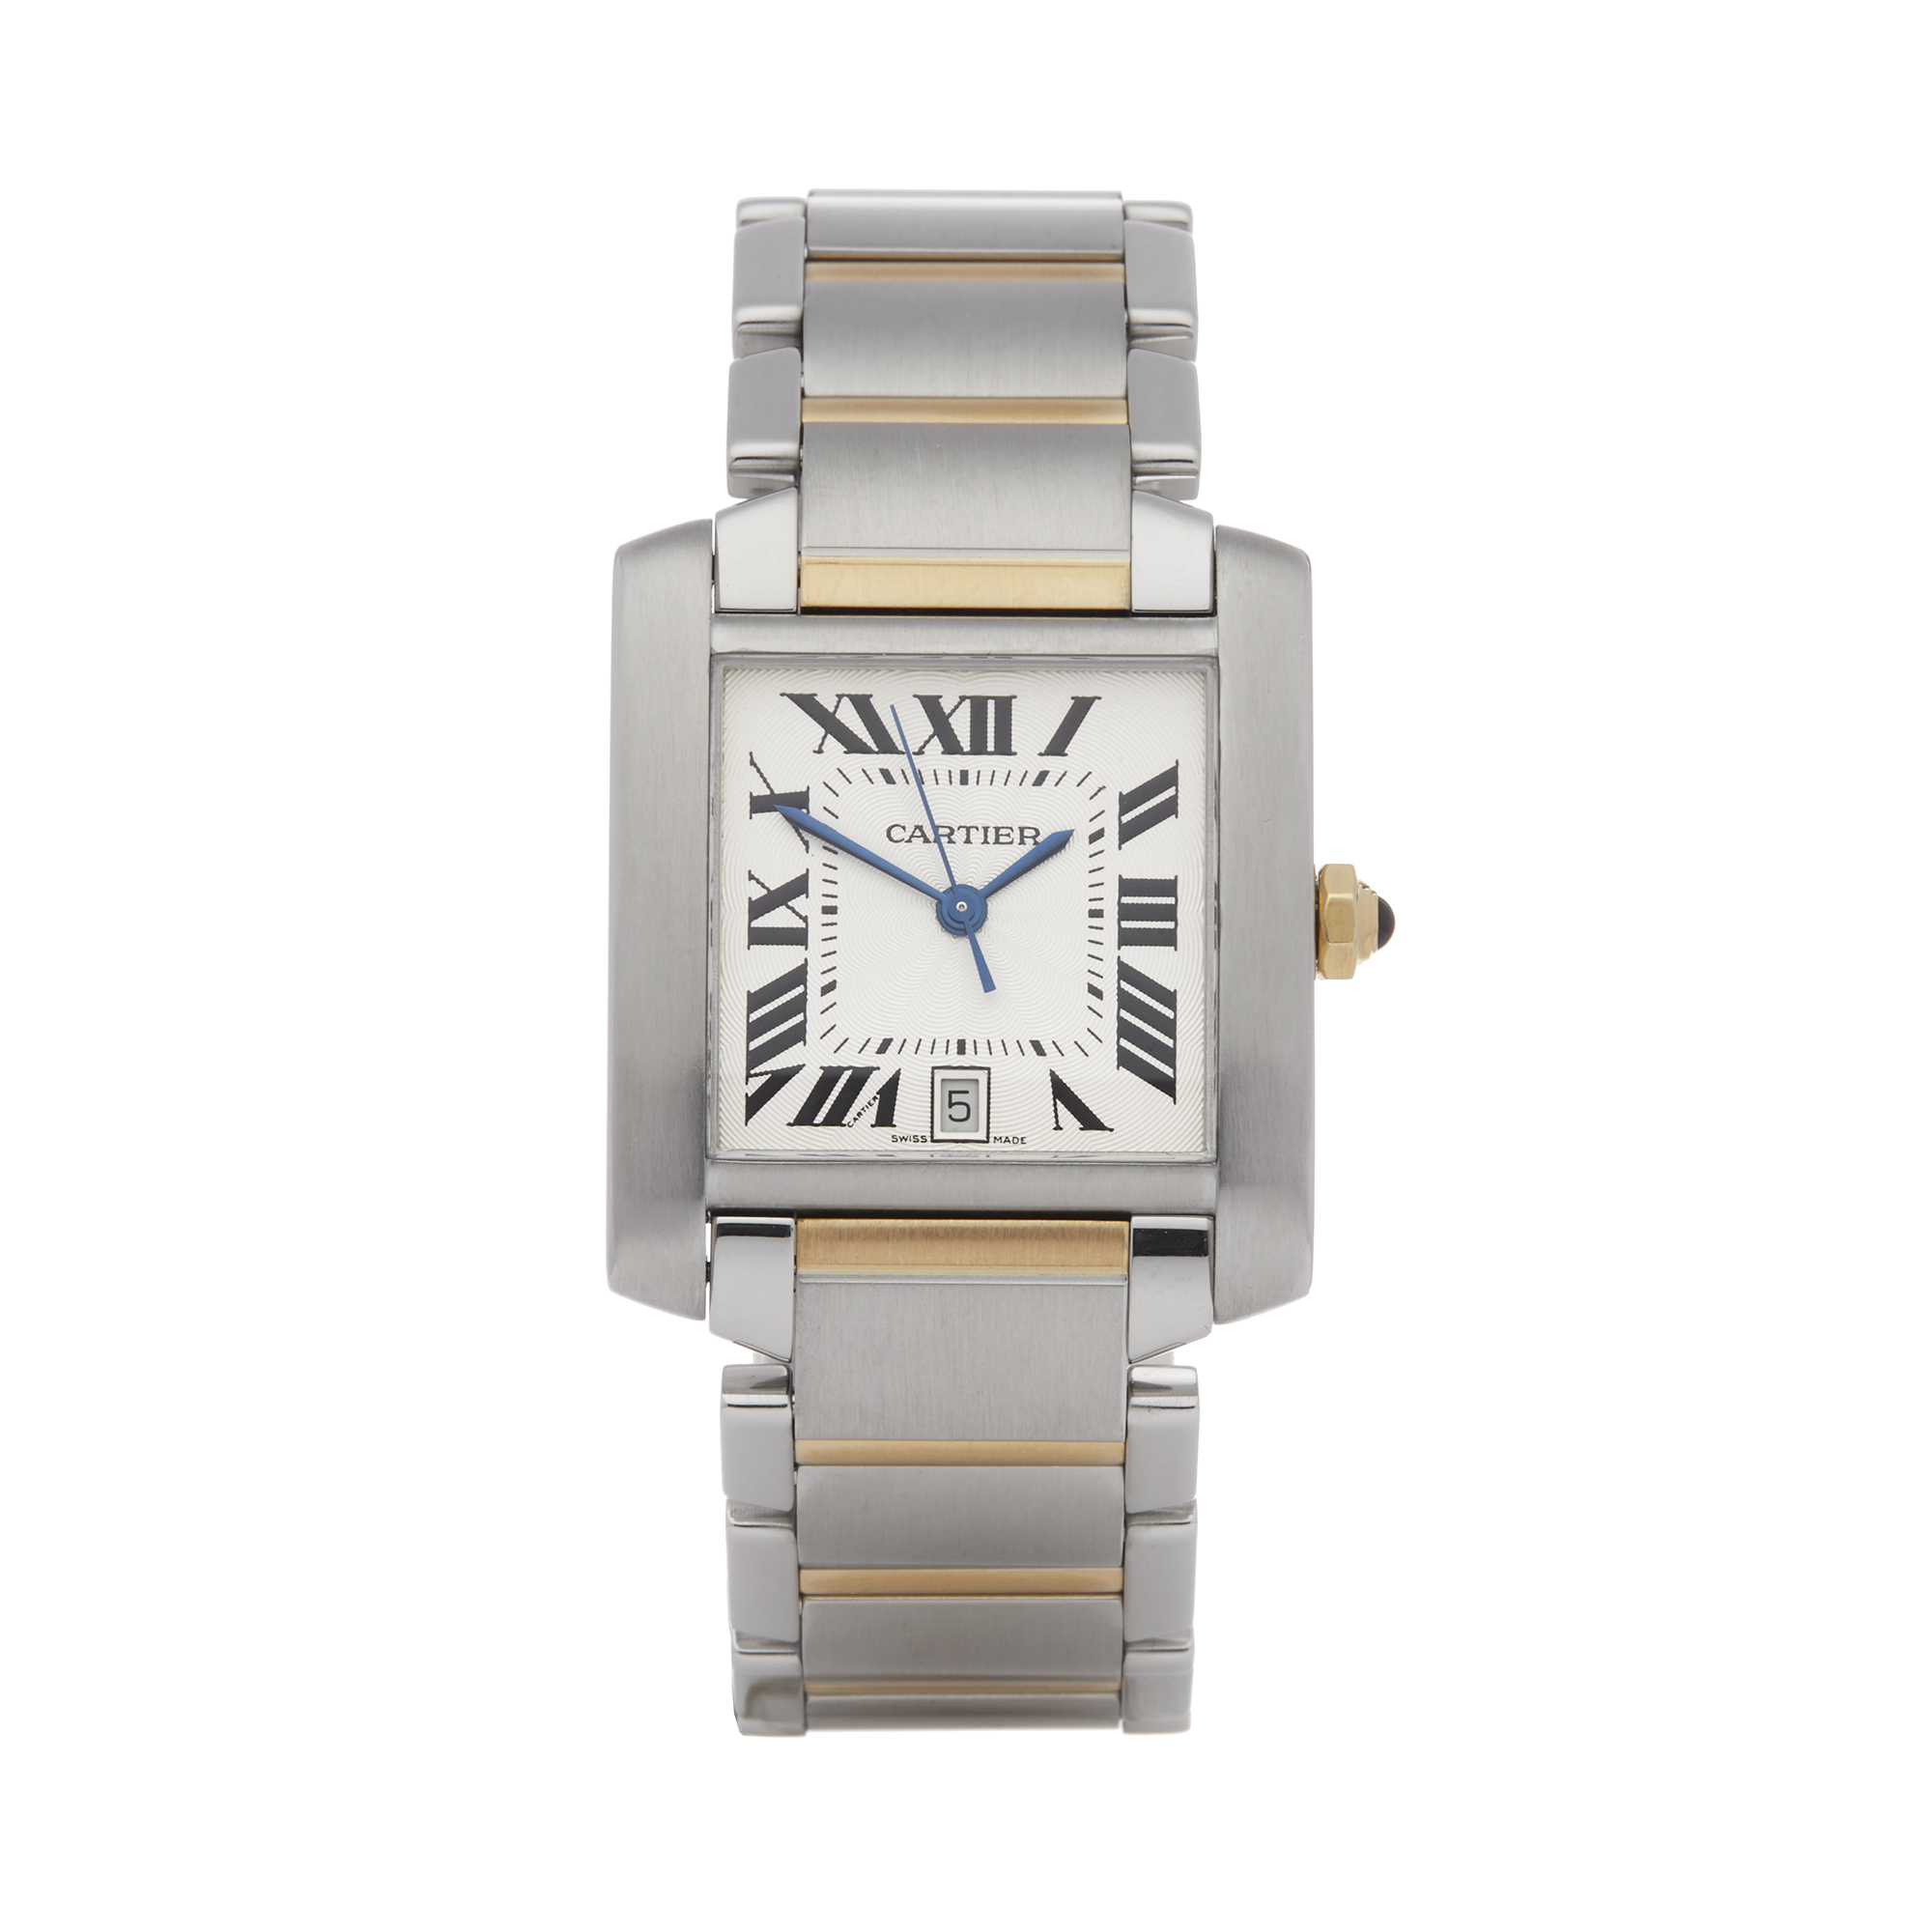 Cartier Tank Francaise 2302 Unisex Stainless Steel Watch - Image 8 of 8